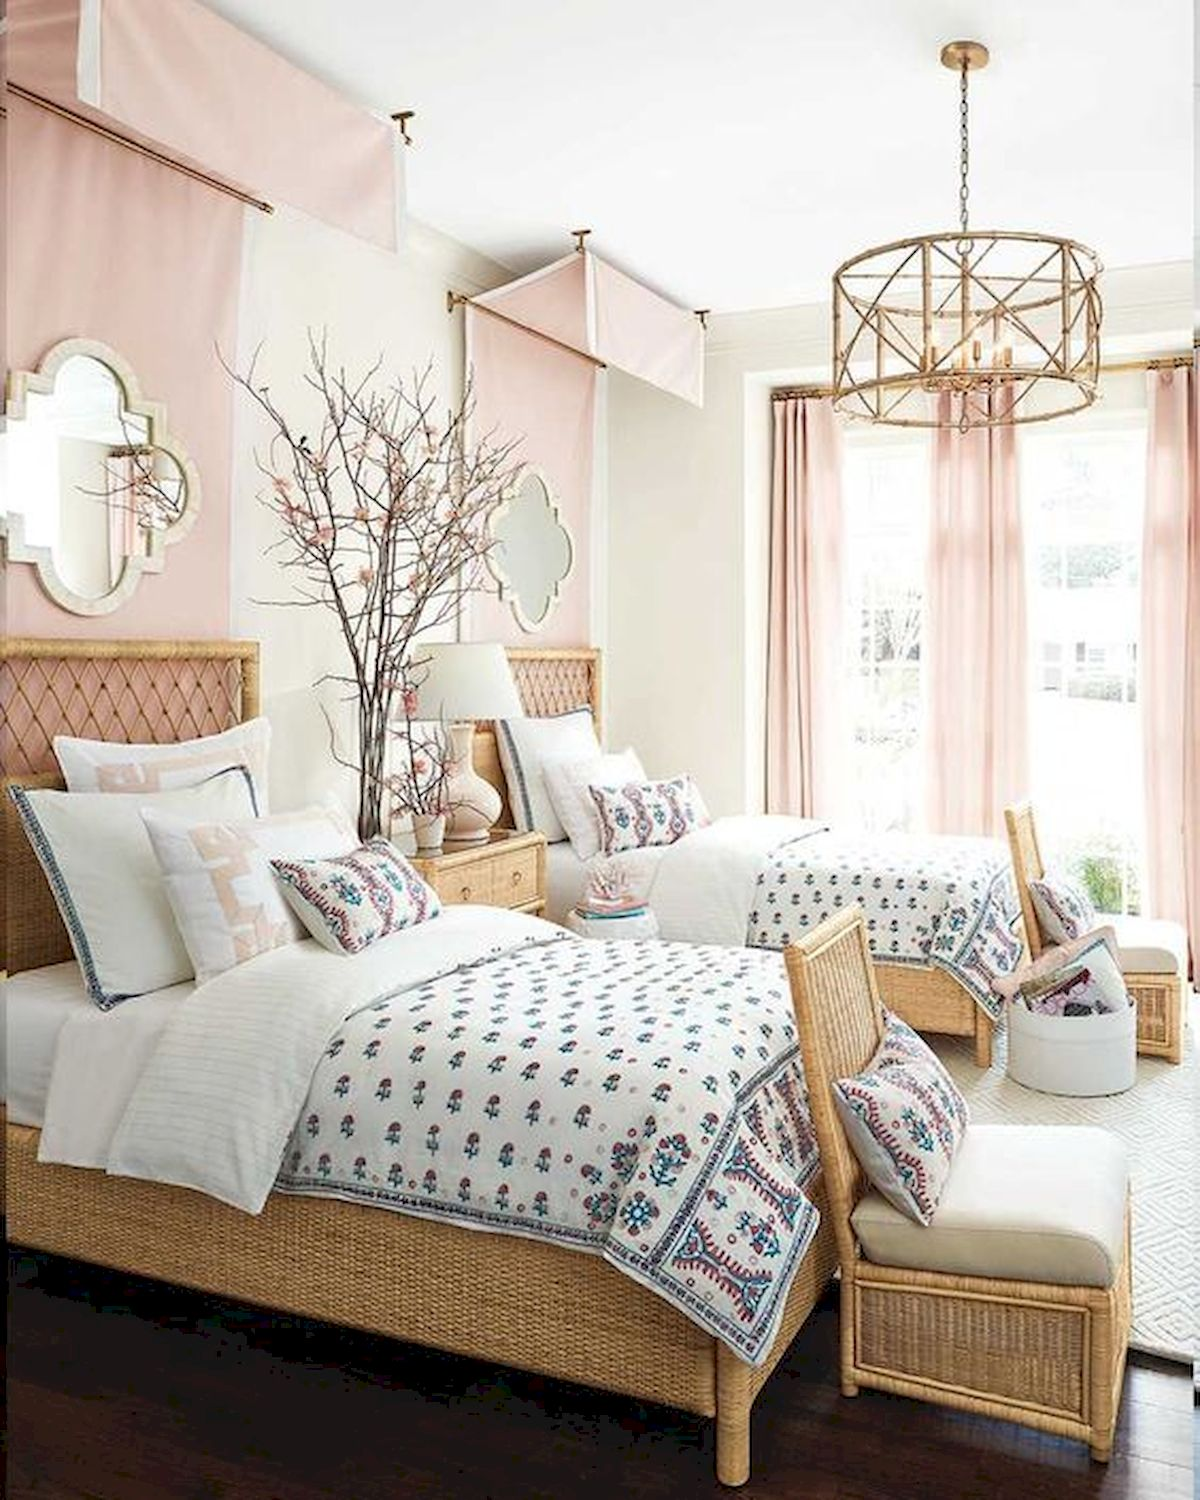 60 Cute DIY Bedroom Design and Decor Ideas for Kids (27)